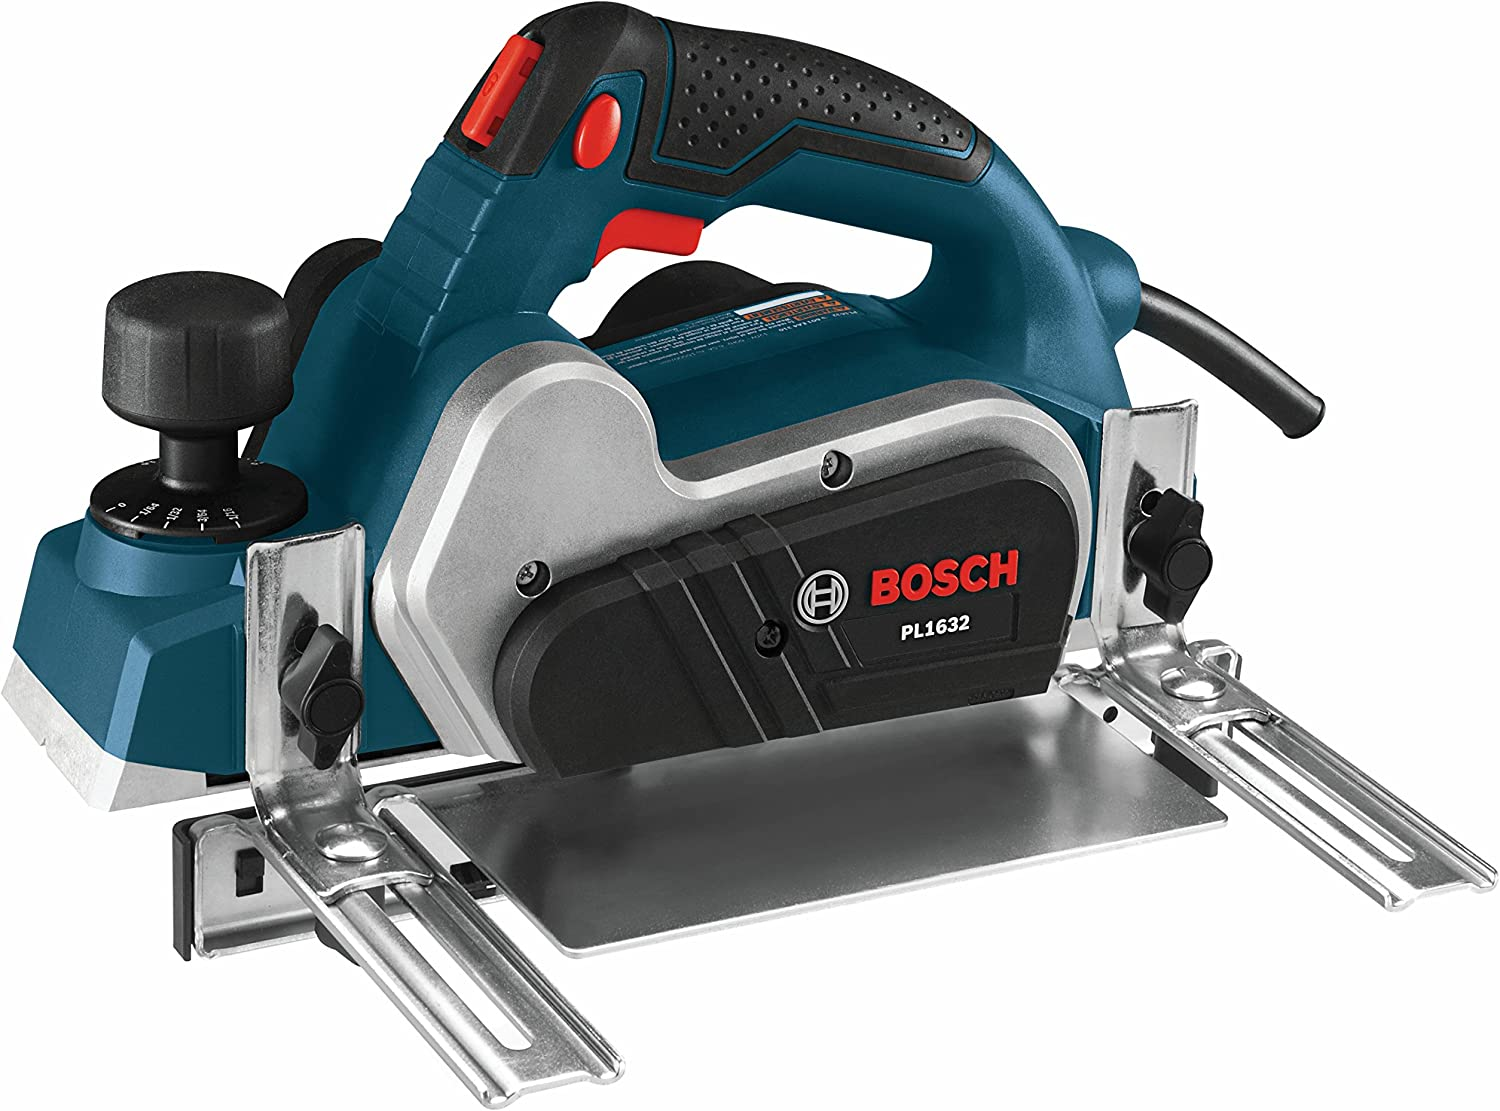 Bosch PL1632 featured image